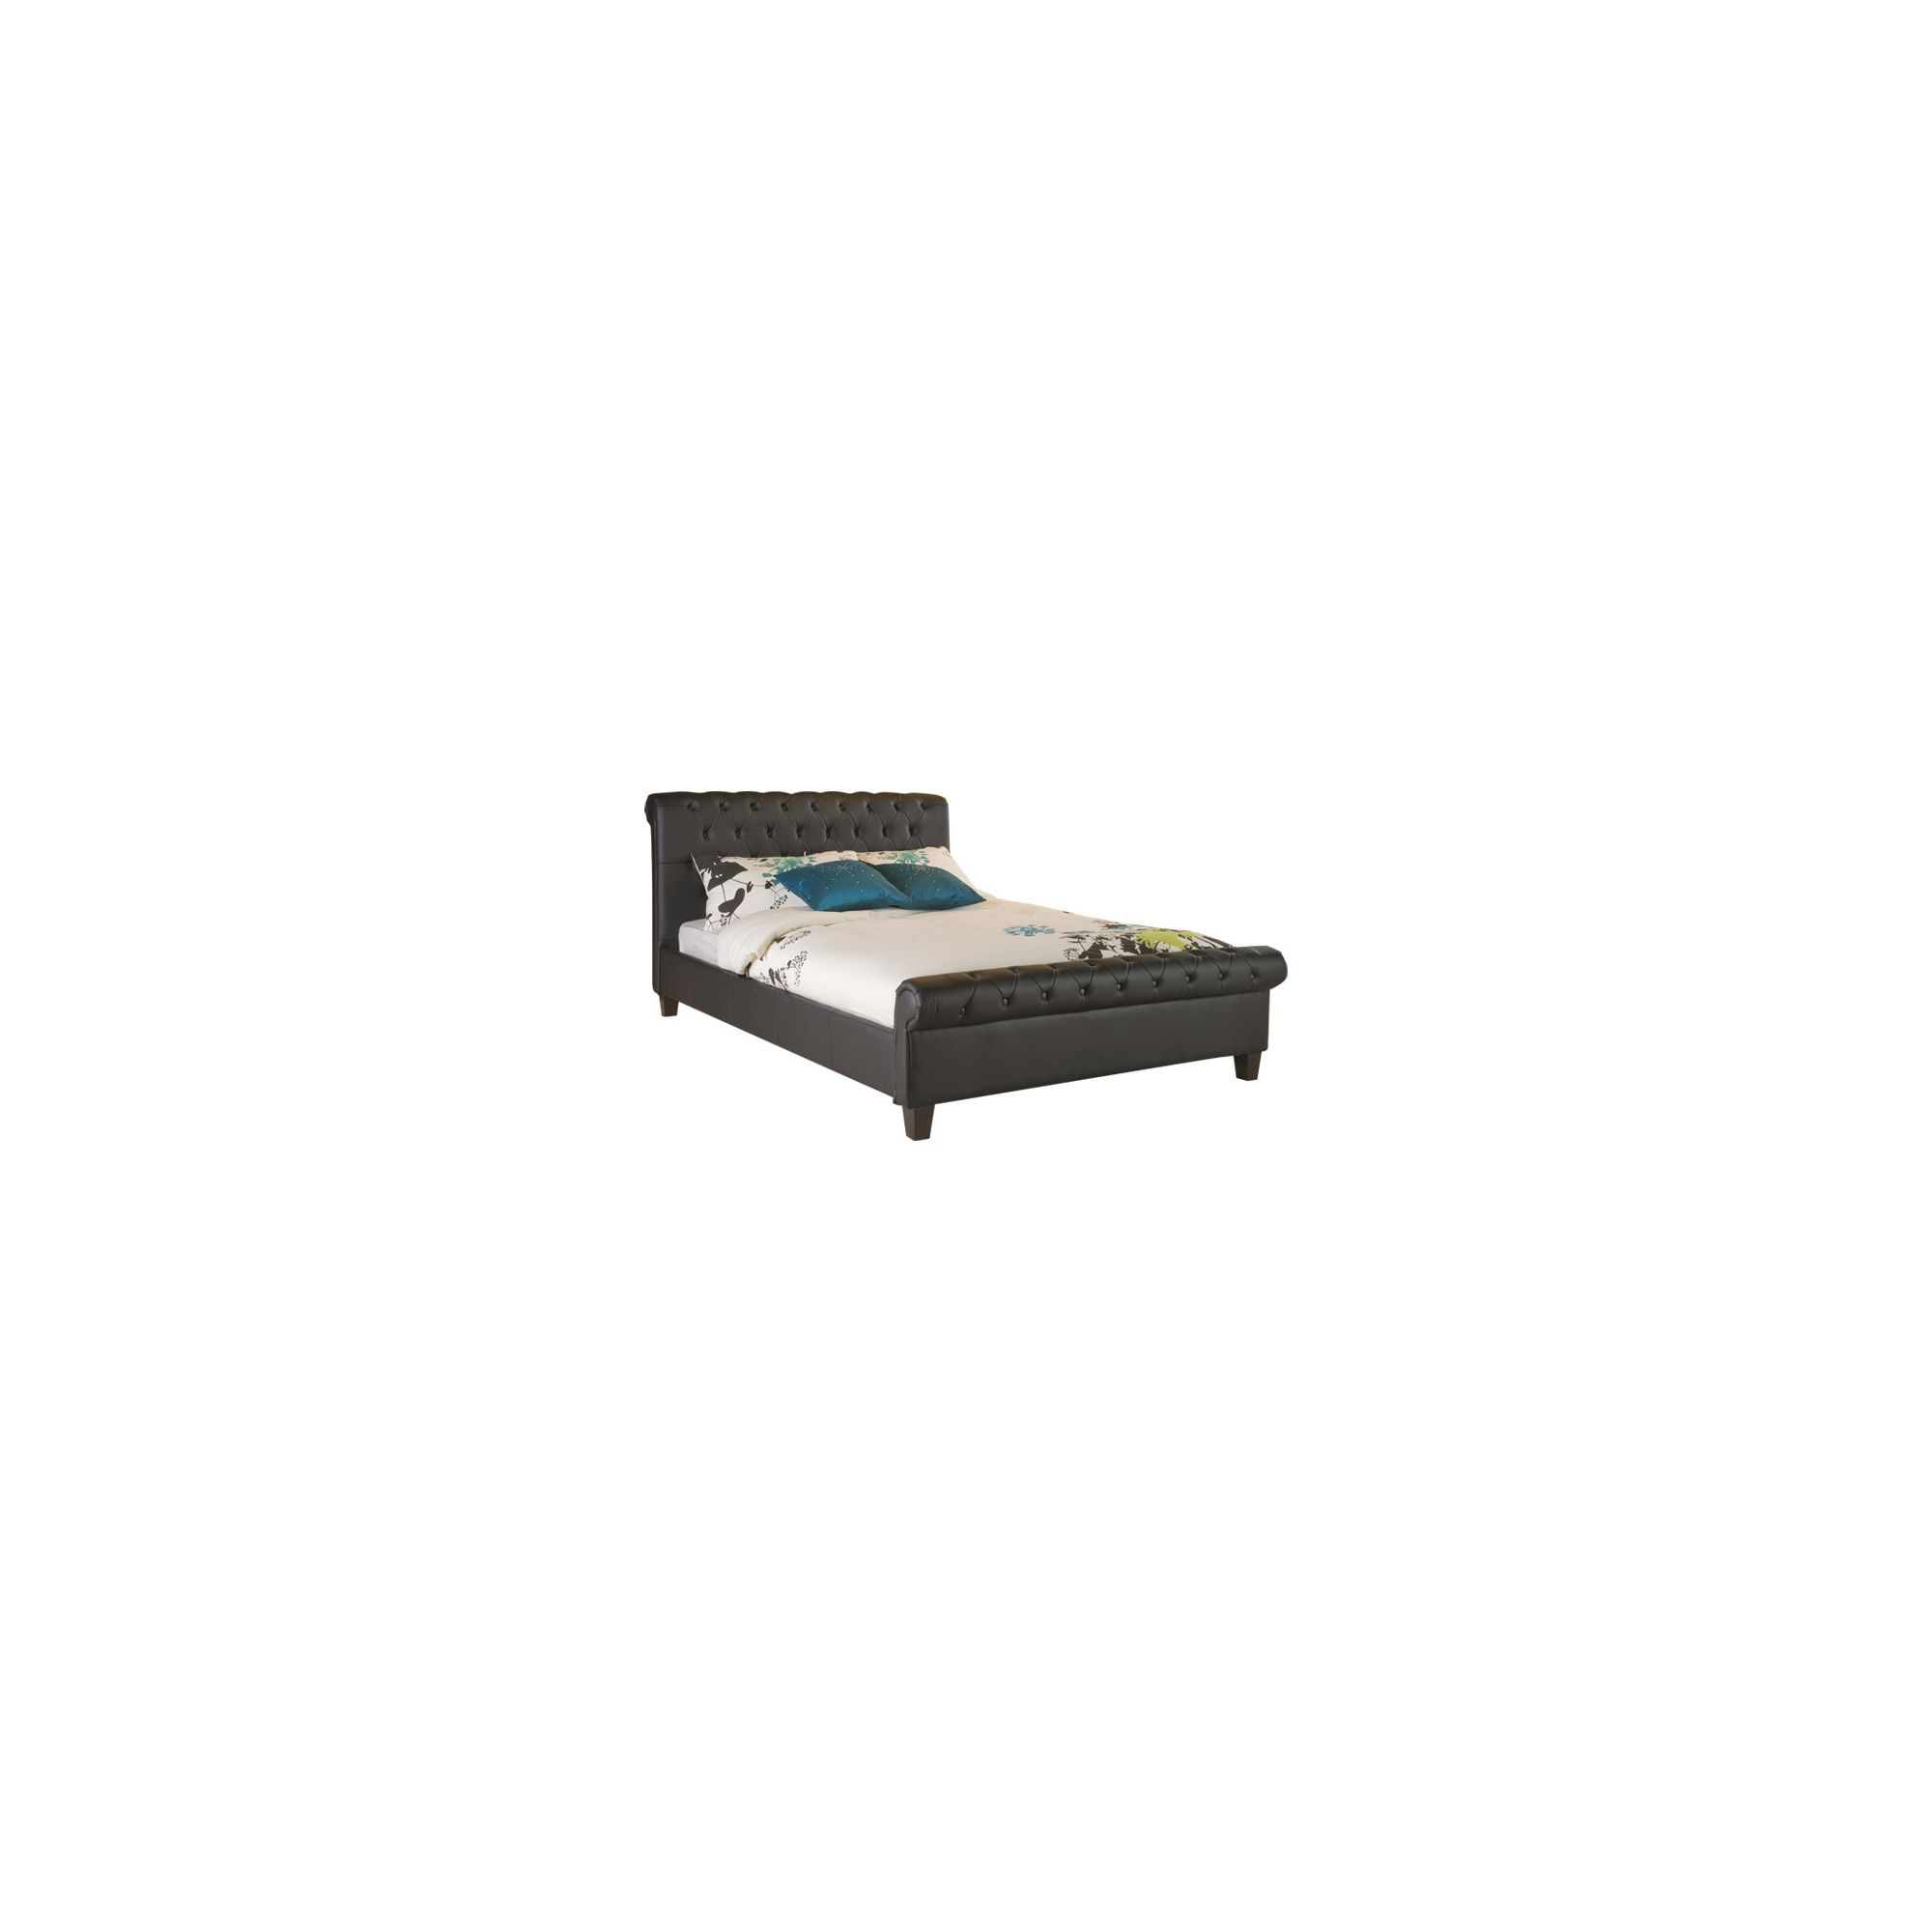 Limelight Phoenix Bed Frame - Double - Black at Tesco Direct